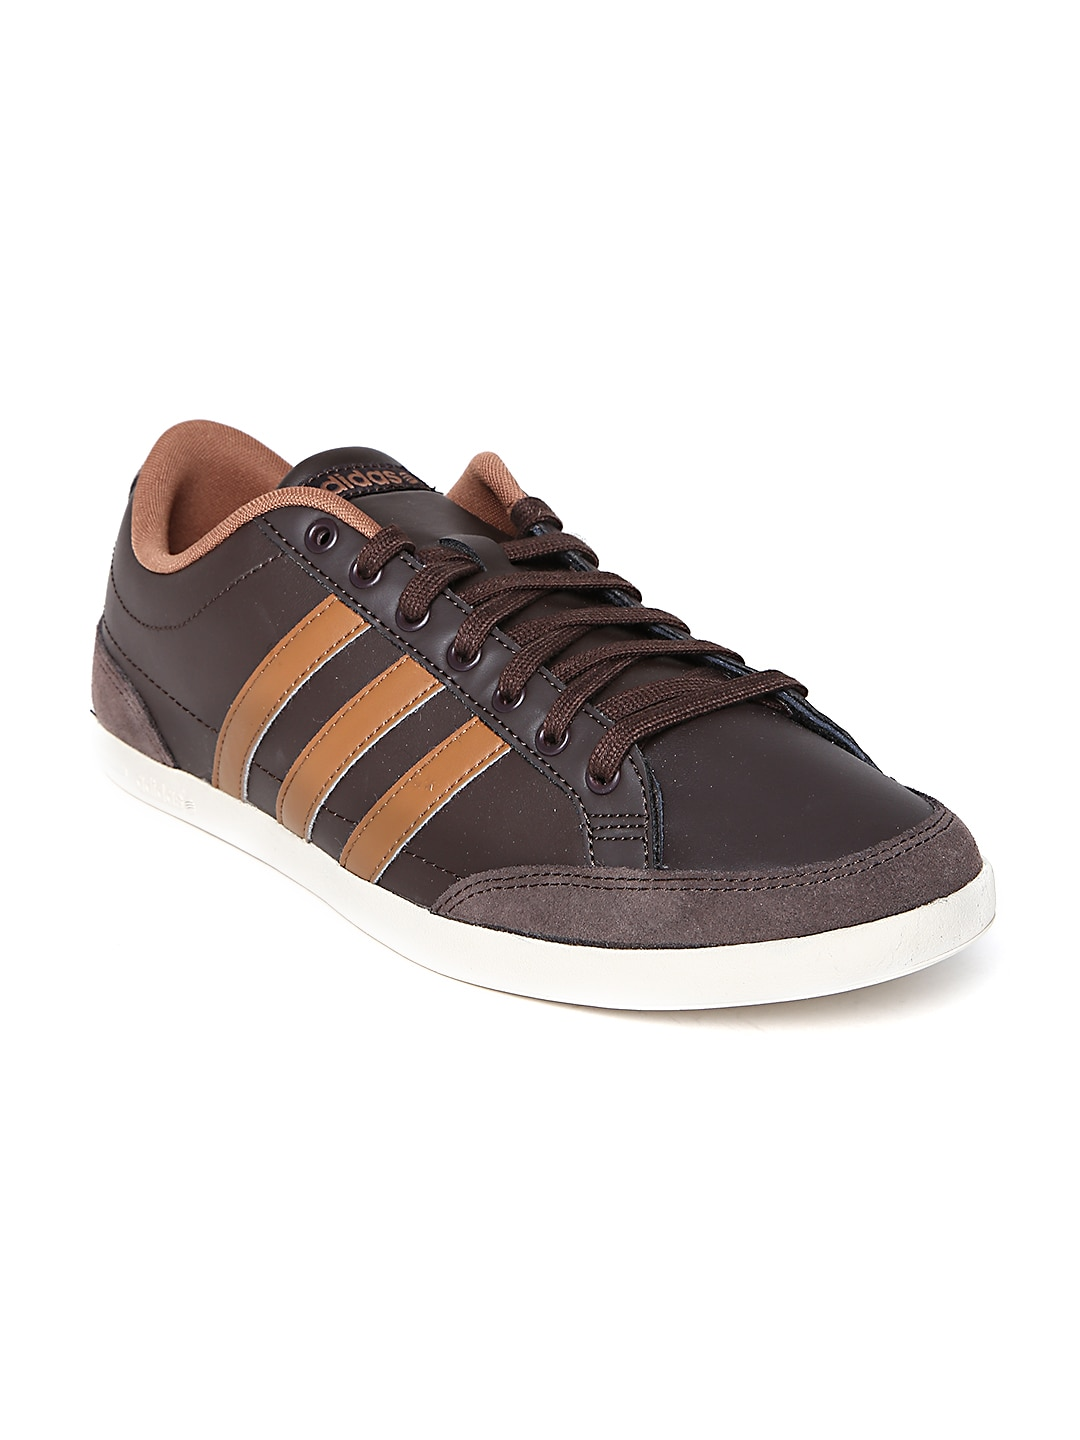 in stock d79c2 6158e Adidas neo f98434 Men Brown Caflaire Lo Leather Sneakers- Price in India